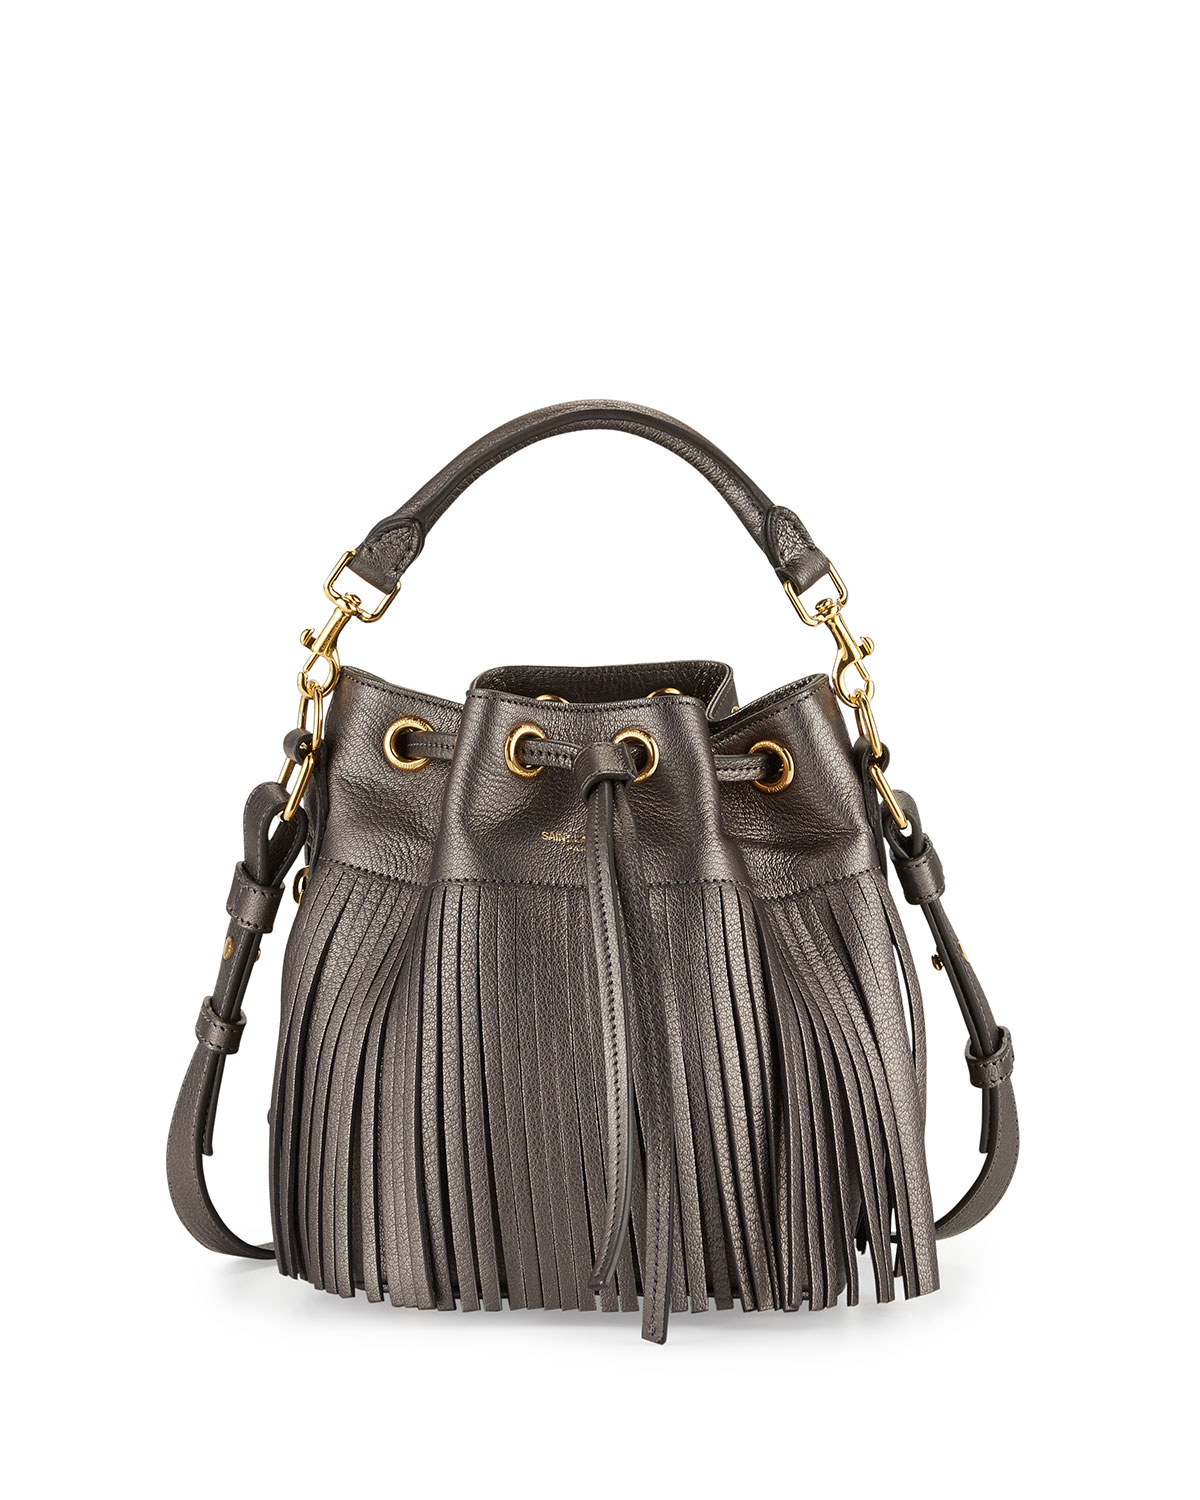 1df4ae8bd8 Gallery. Previously sold at  Neiman Marcus · Women s Fringed Bags Women s Saint  Laurent Emmanuelle ...